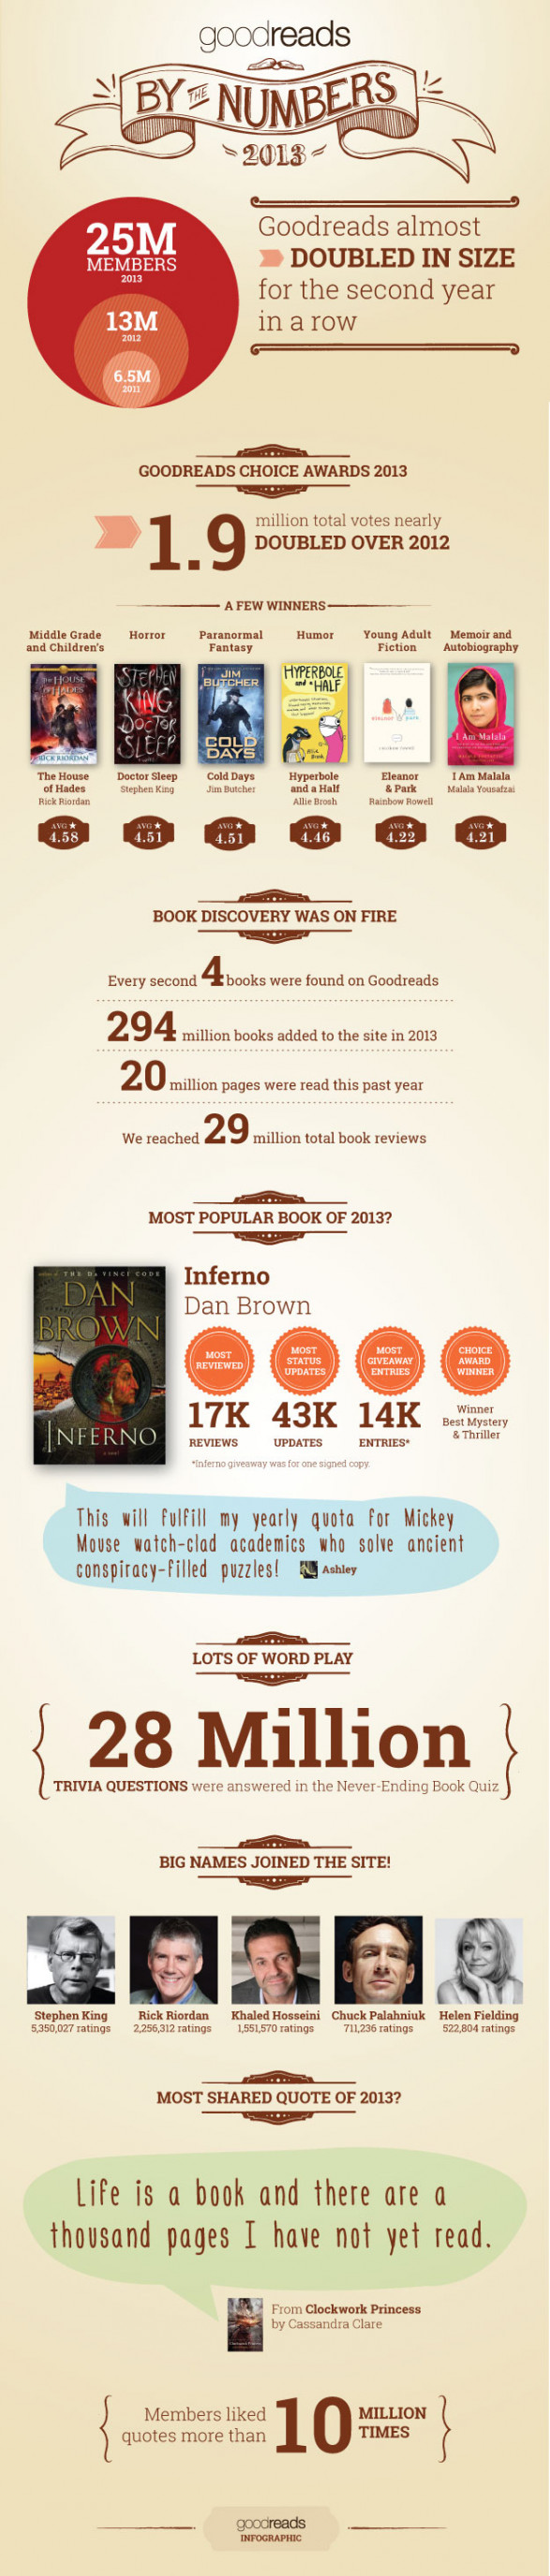 Goodreads by the Numbers 2013